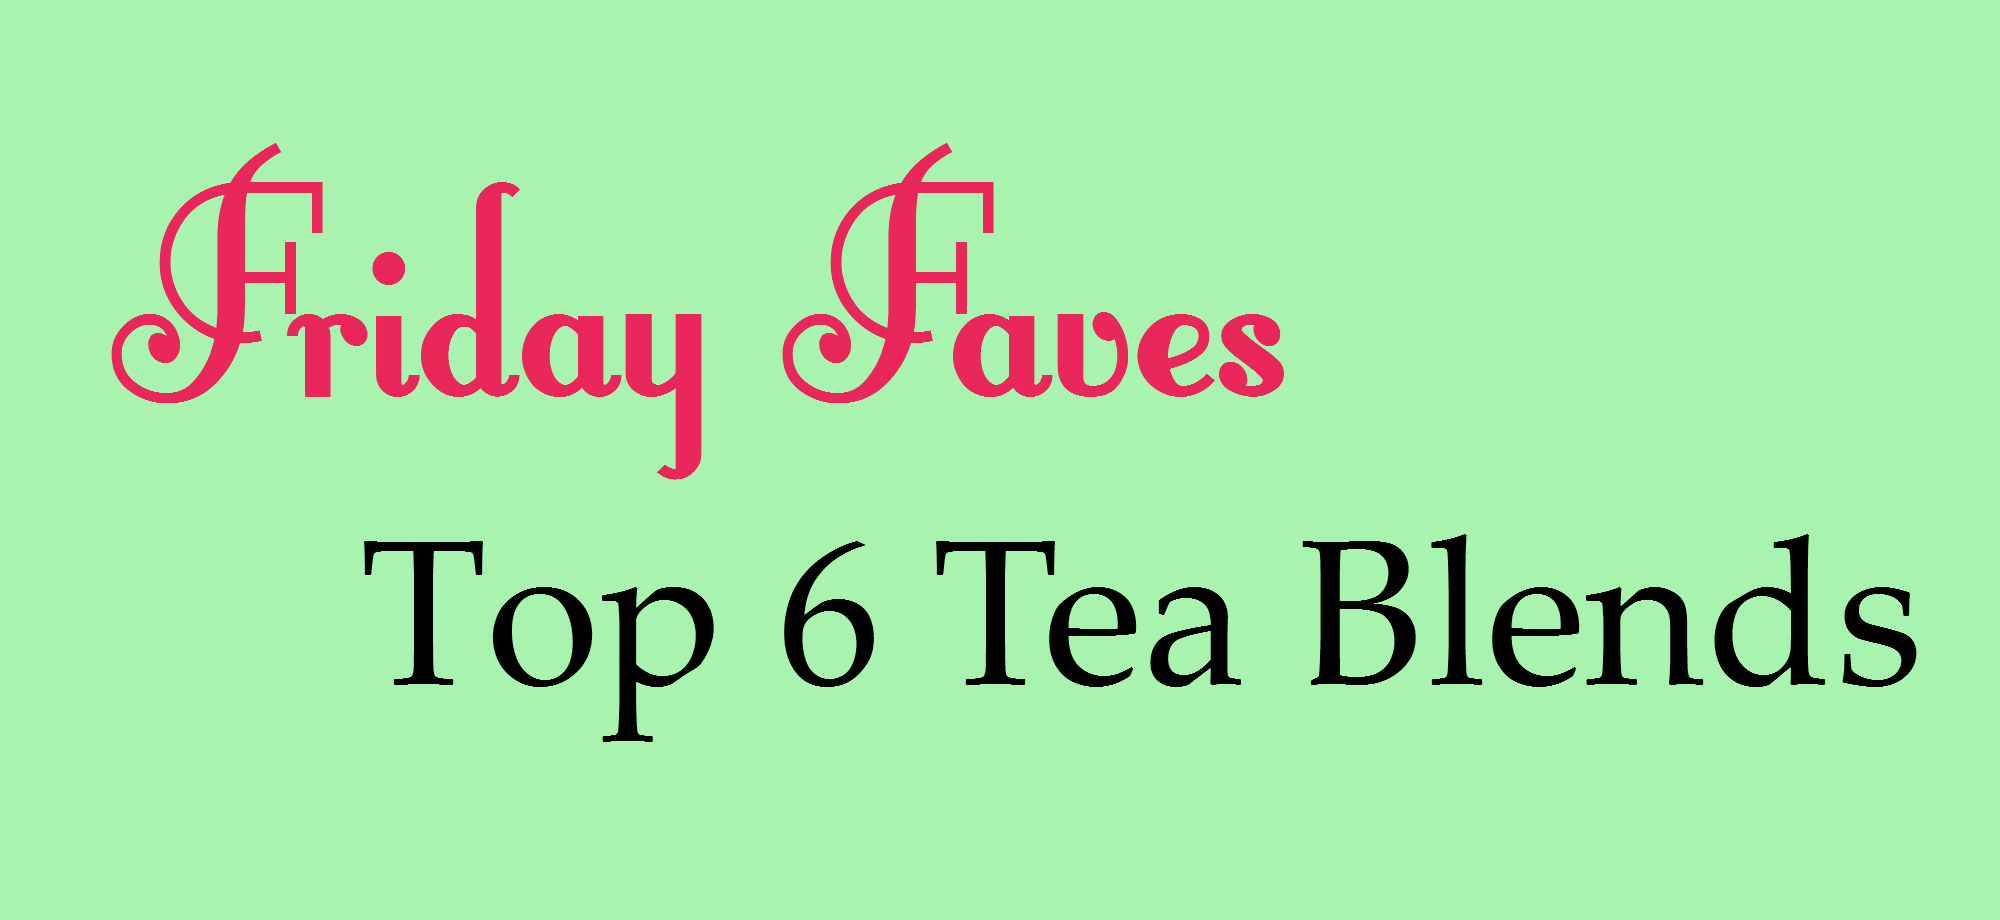 Friday Faves Top 6 Tea Blends Strawberry Moon